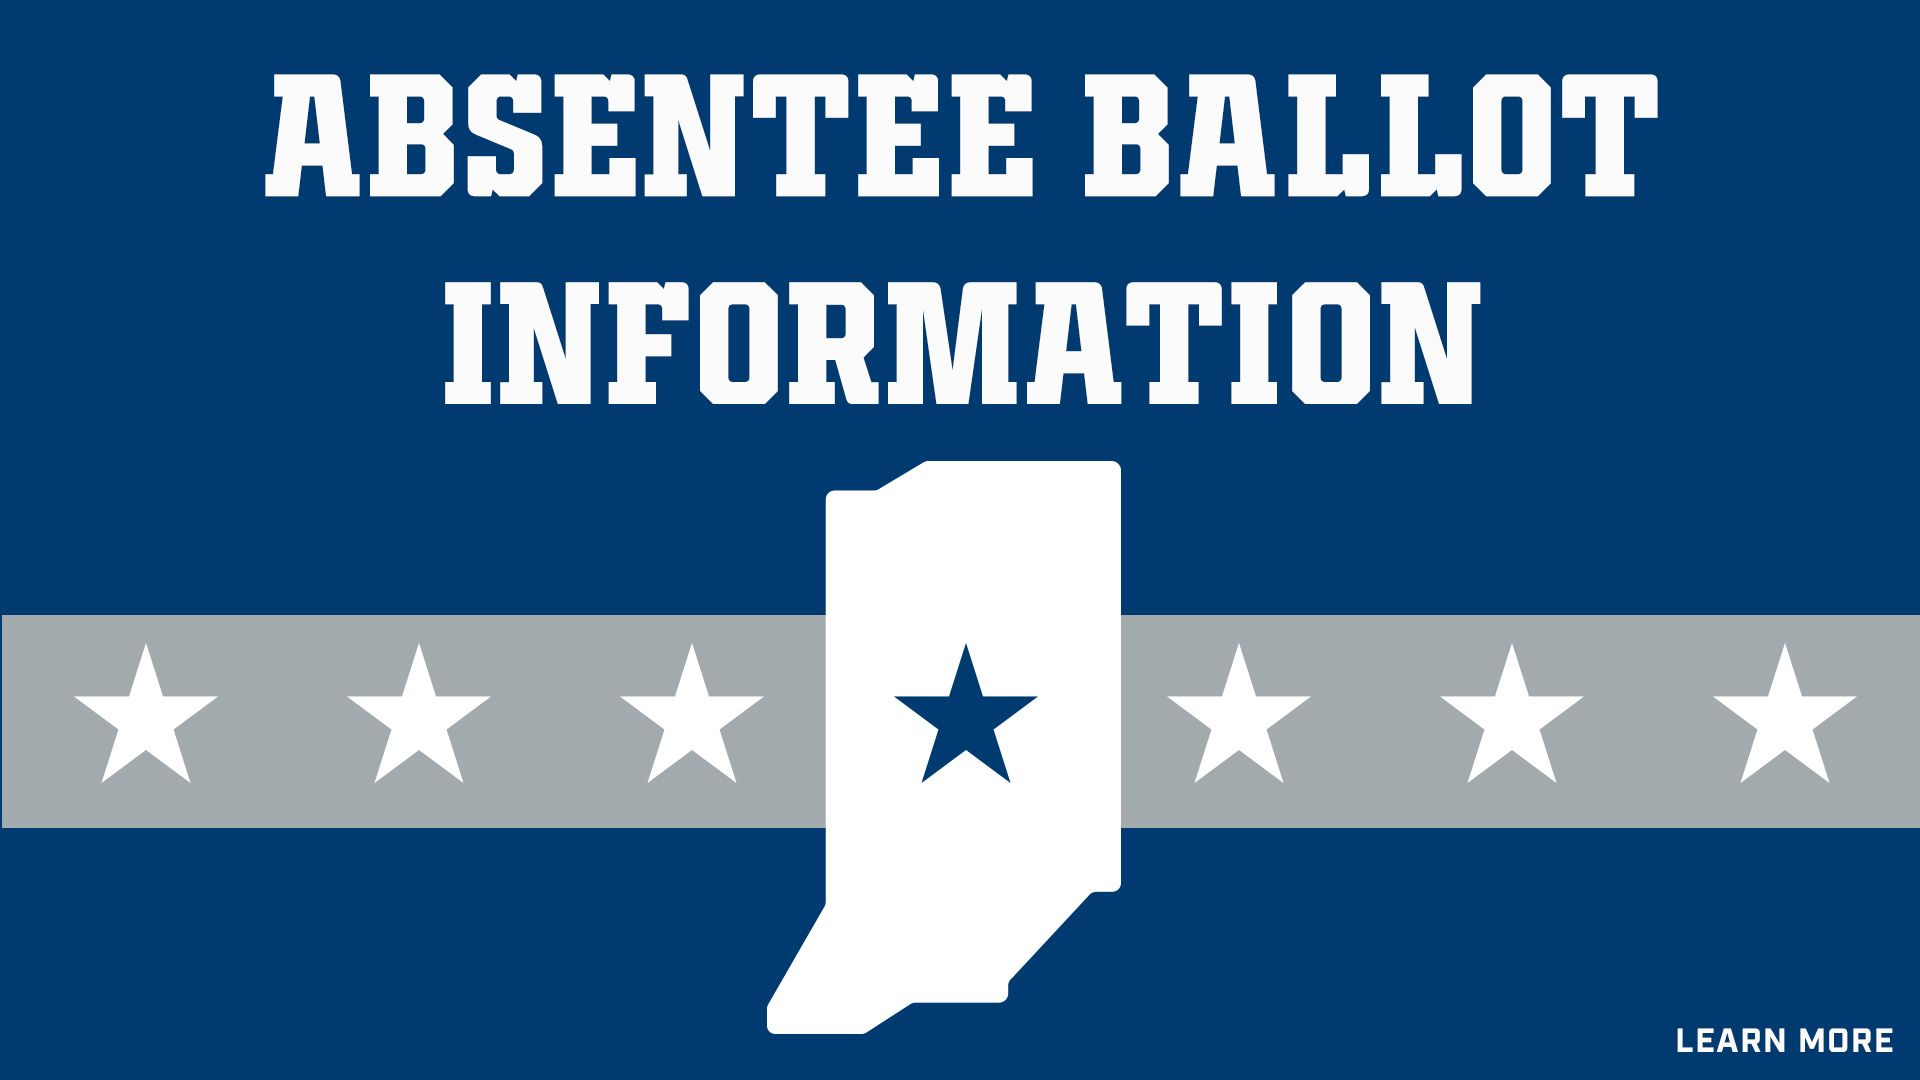 Indianapolis Colts For The Future: Absentee Ballot Information